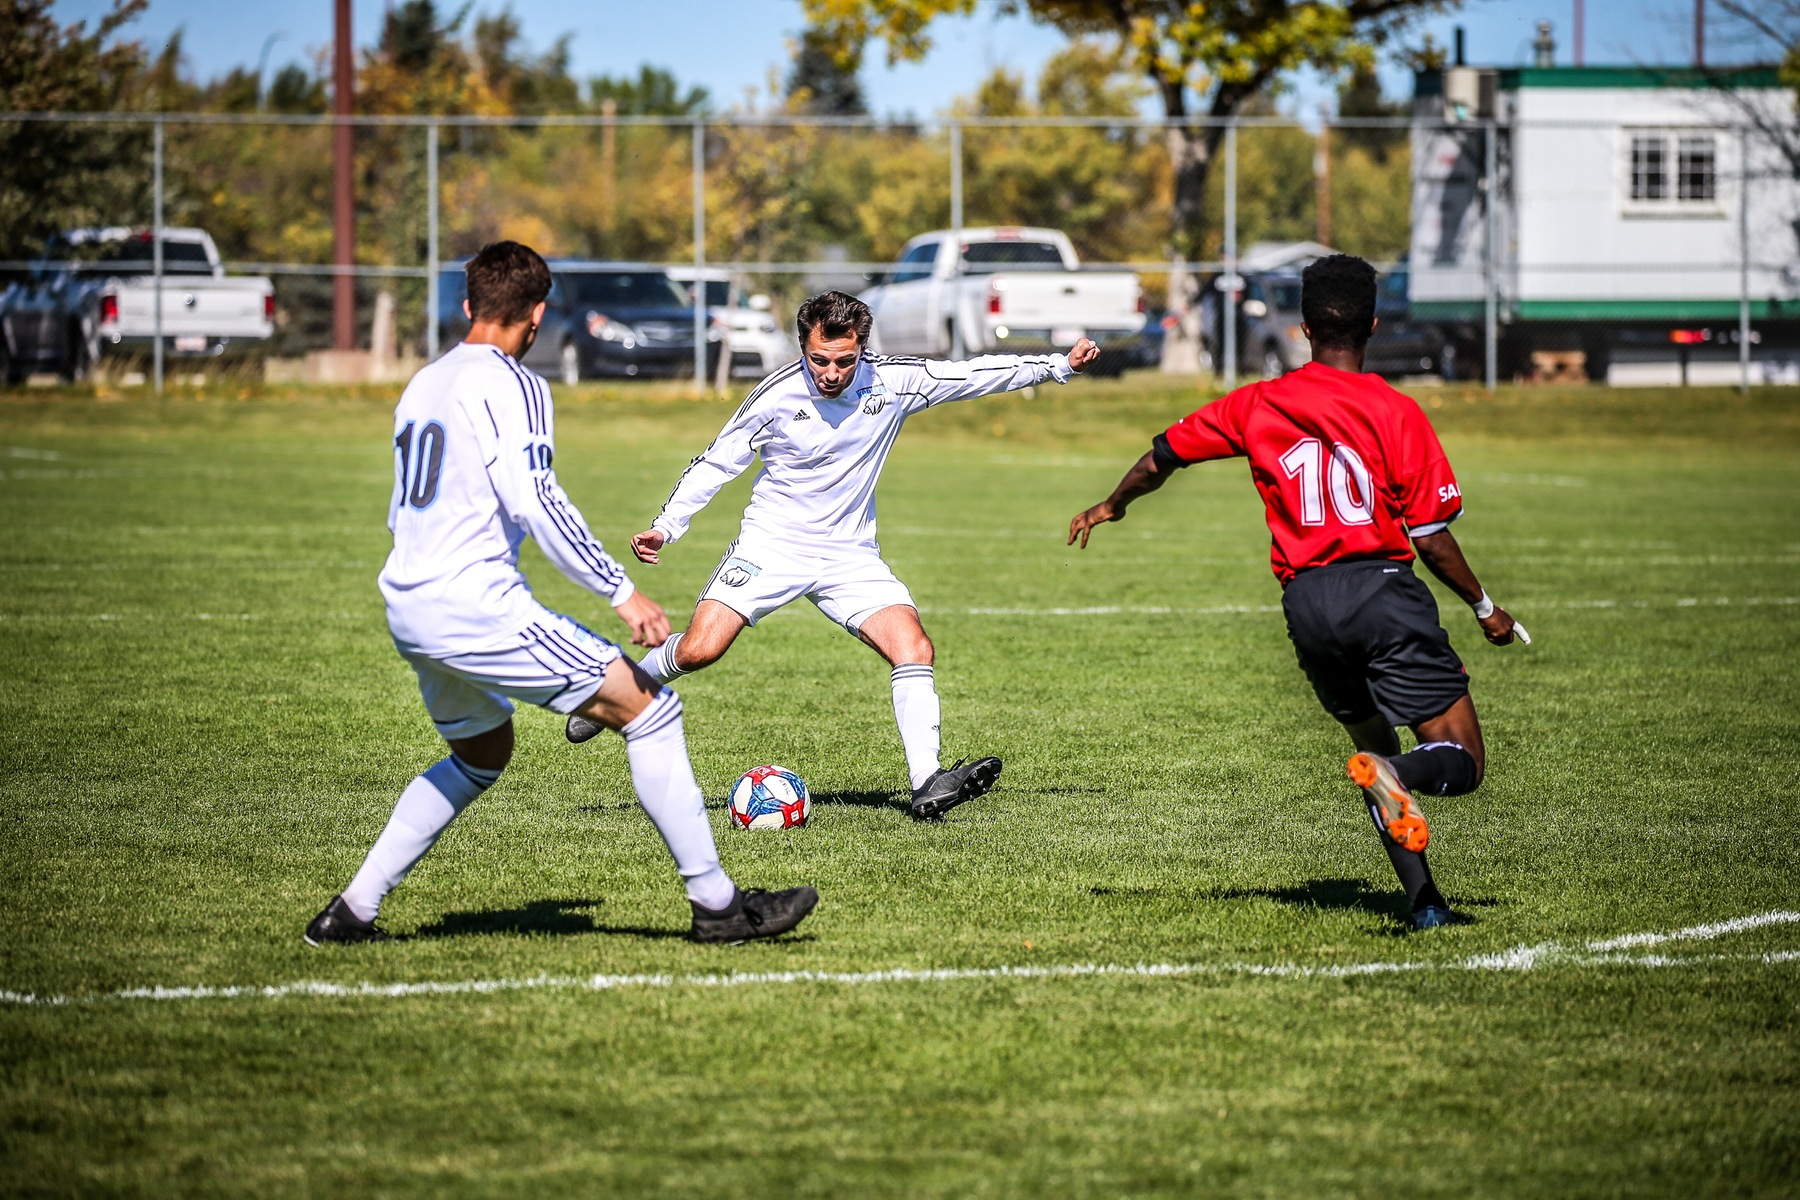 MSOC | The Kodiaks serve the Trojans their first loss in two years